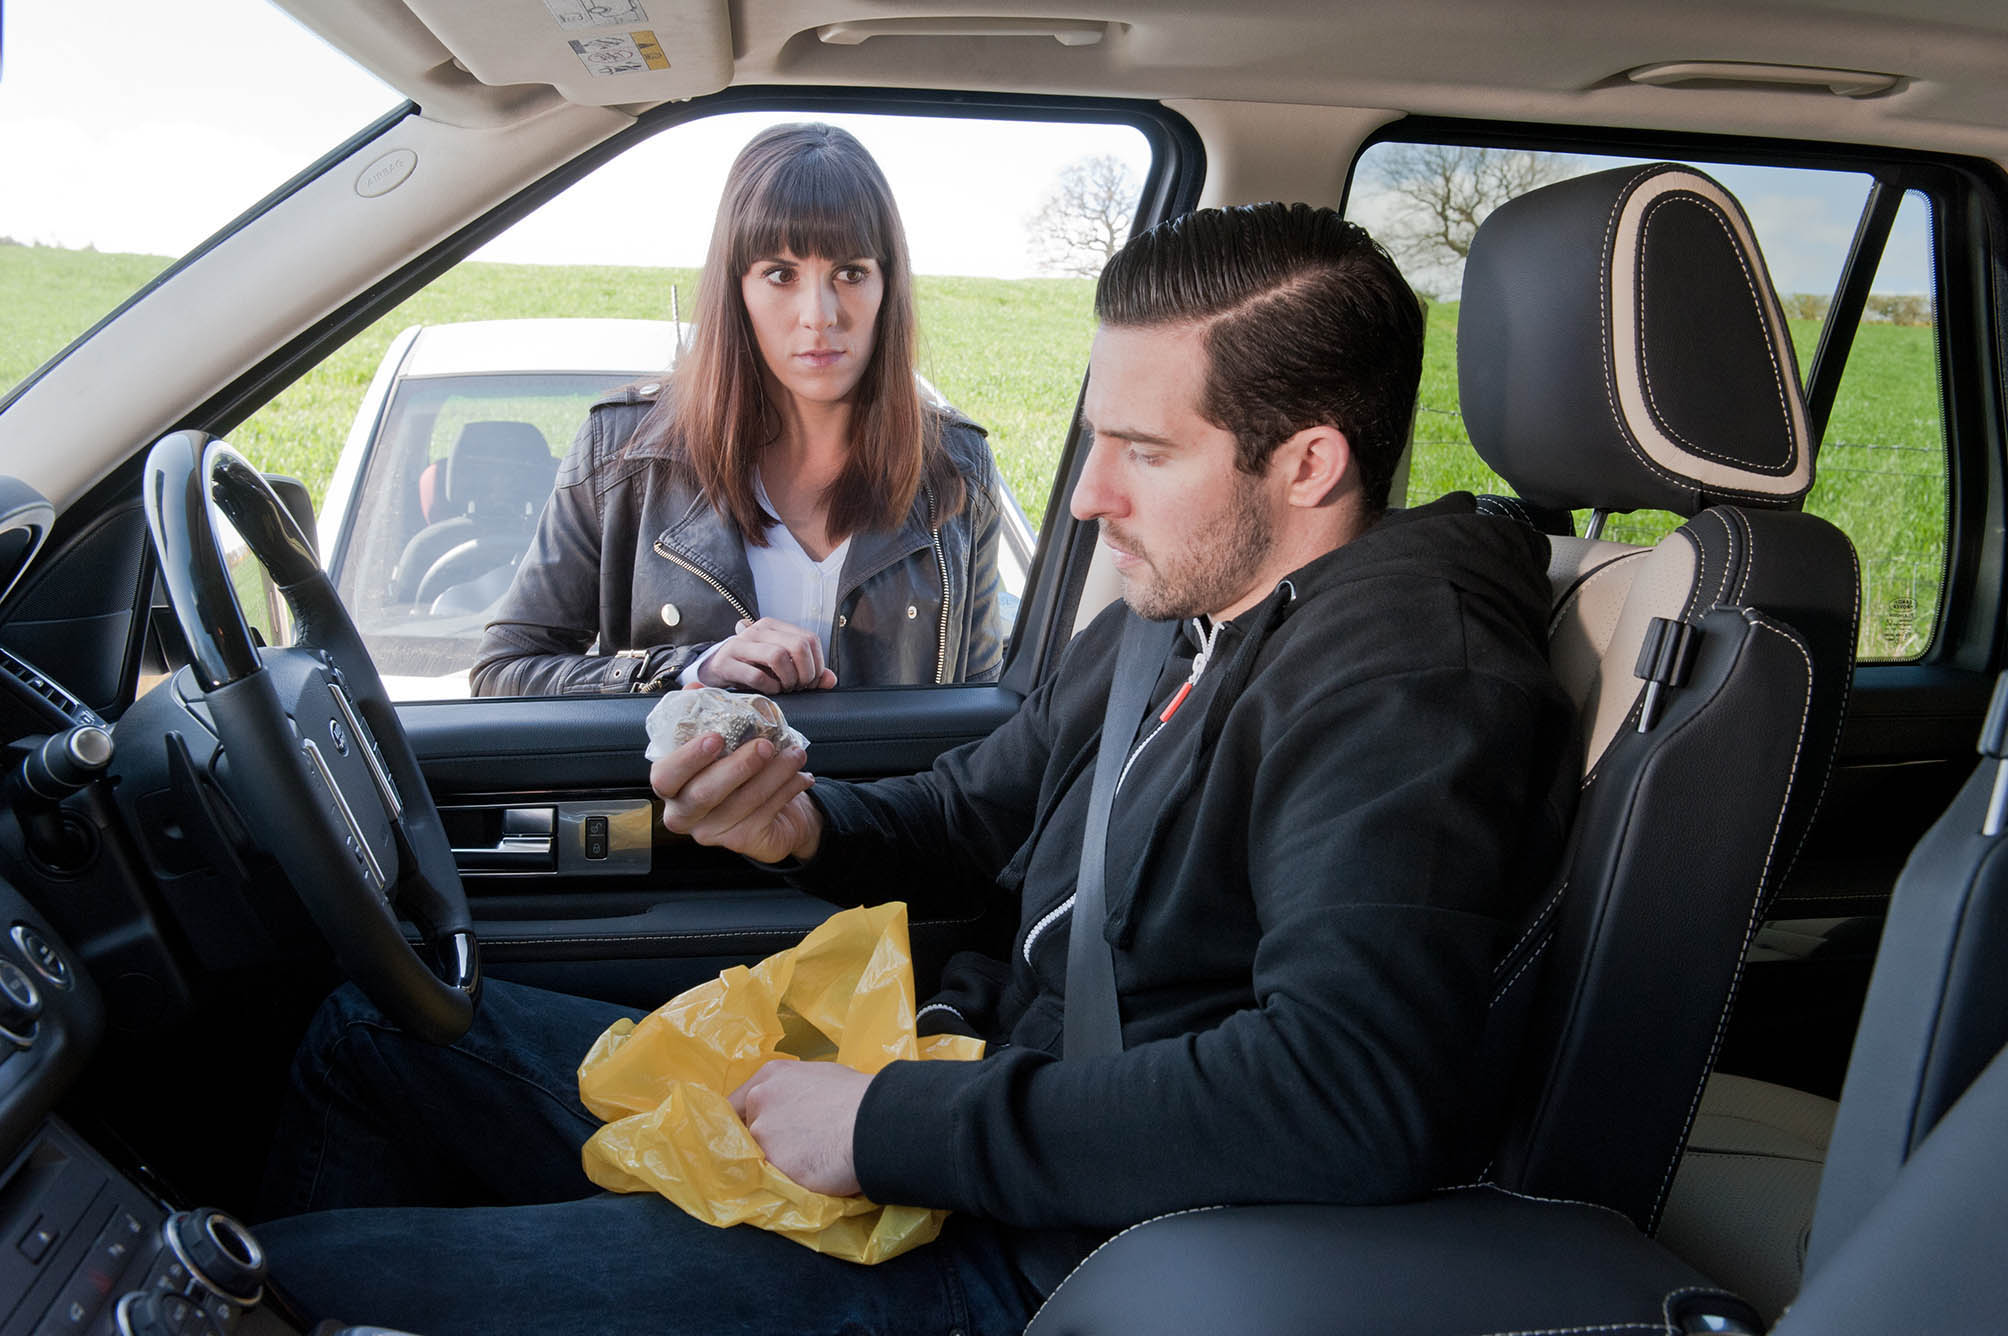 Editorial use only Mandatory Credit: Photo by ITV/Shutterstock (4101937ea) Wanting to get the ball rolling, Donna Windsor [VERITY RUSHWORTH] arranges to meet Ross Barton [MICHAEL PARR] with the stolen goods but the situation leaves her feeling on edge and she snaps at April. Later, having not heard from Ross, Donna goes to see him but is left disappointed with the amount of cash he has received, as it's not what she expected. Left with an ultimatum, will Donna decide to quit or will she start thinking bigger? 'Emmerdale' TV Programme. - 2014 Episode 6879